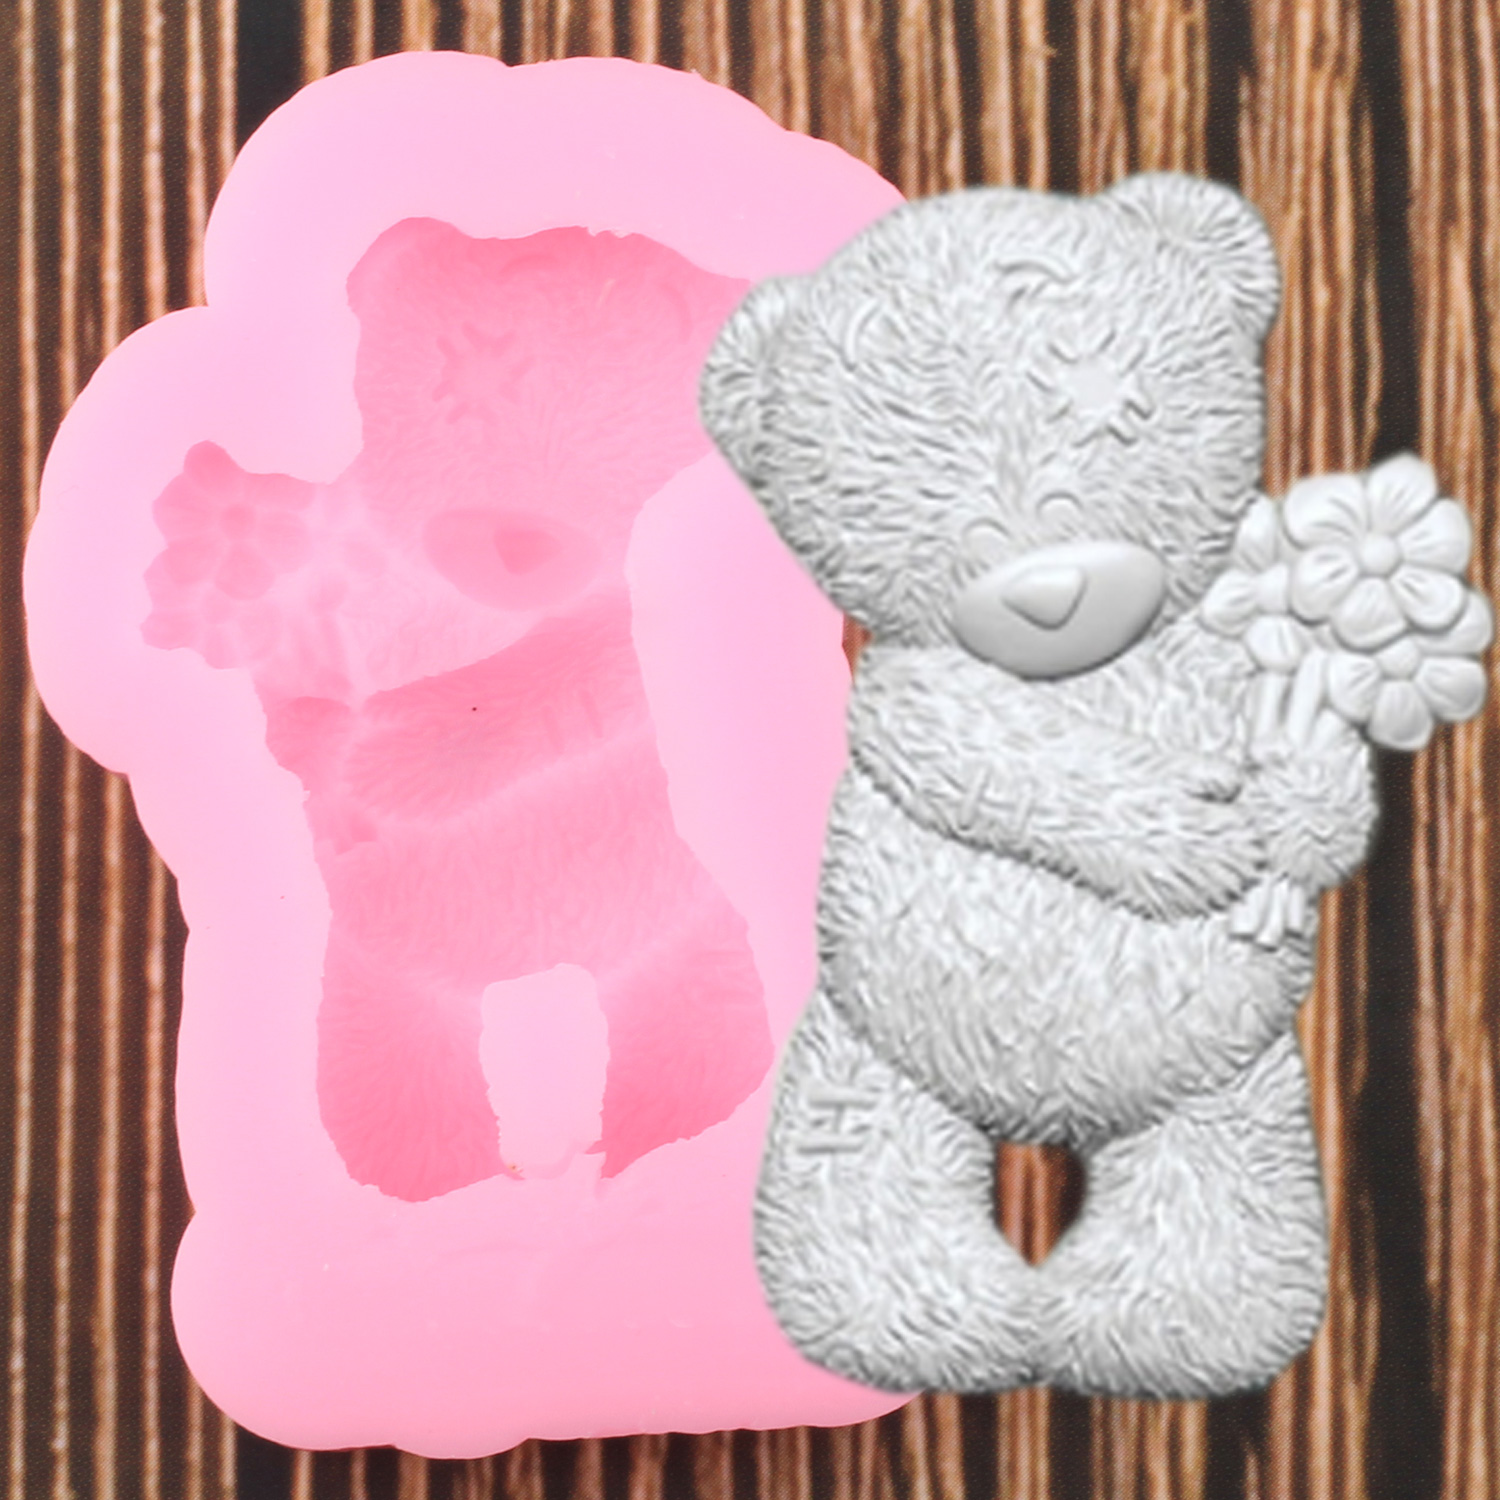 3D Bear Silicone Mold DIY Baby Birthday Party Cake Decorating Tools Cupcake Topper Fondant Baking Chocolate Candy Molds